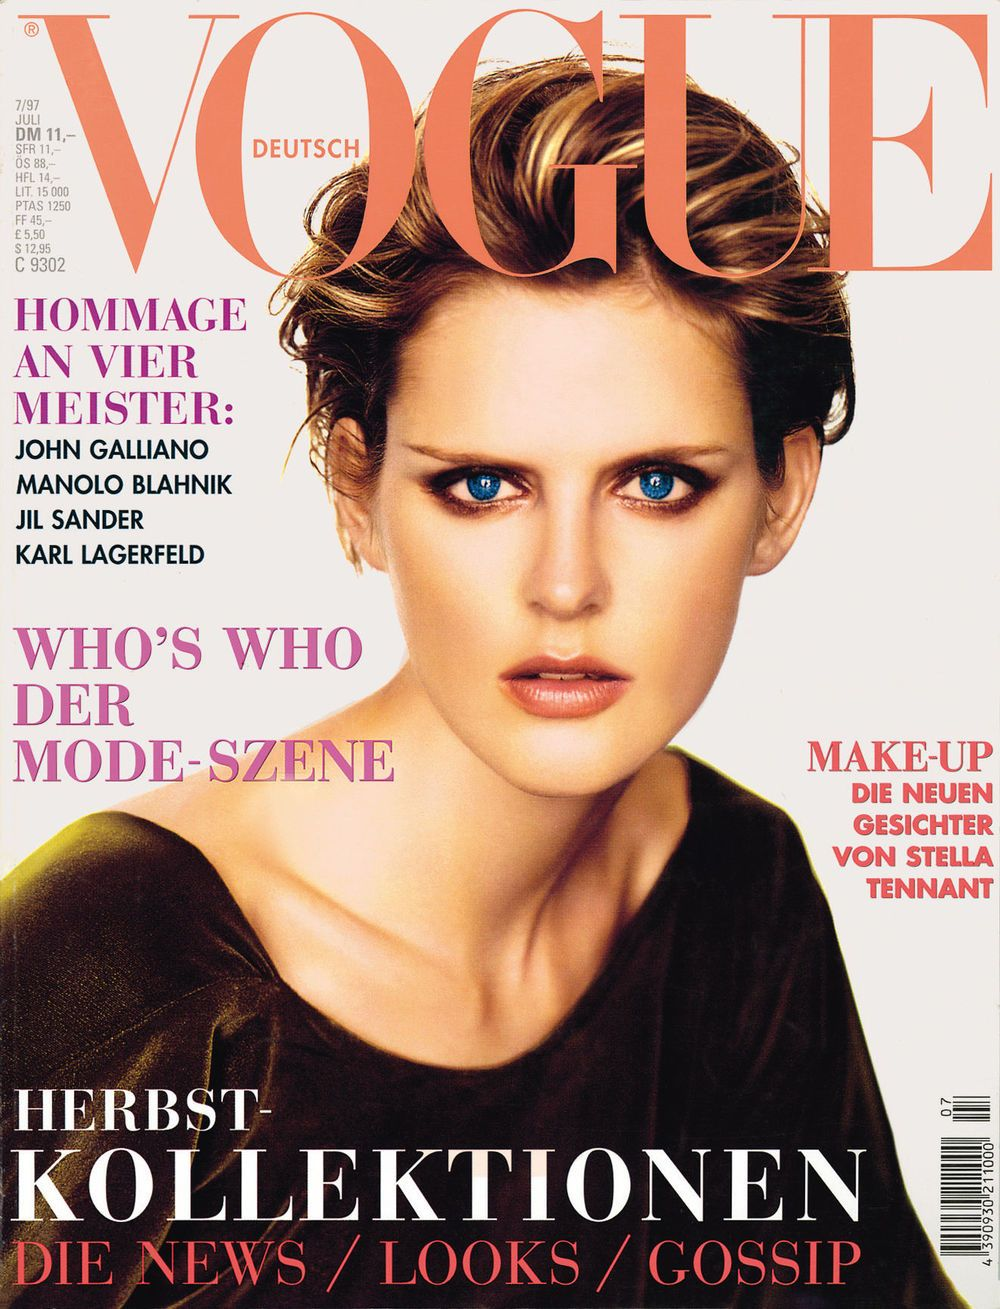 Stella Tennant Throughout the Years in Vogue | Stella tennant, Vogue  deutsch, German vogue